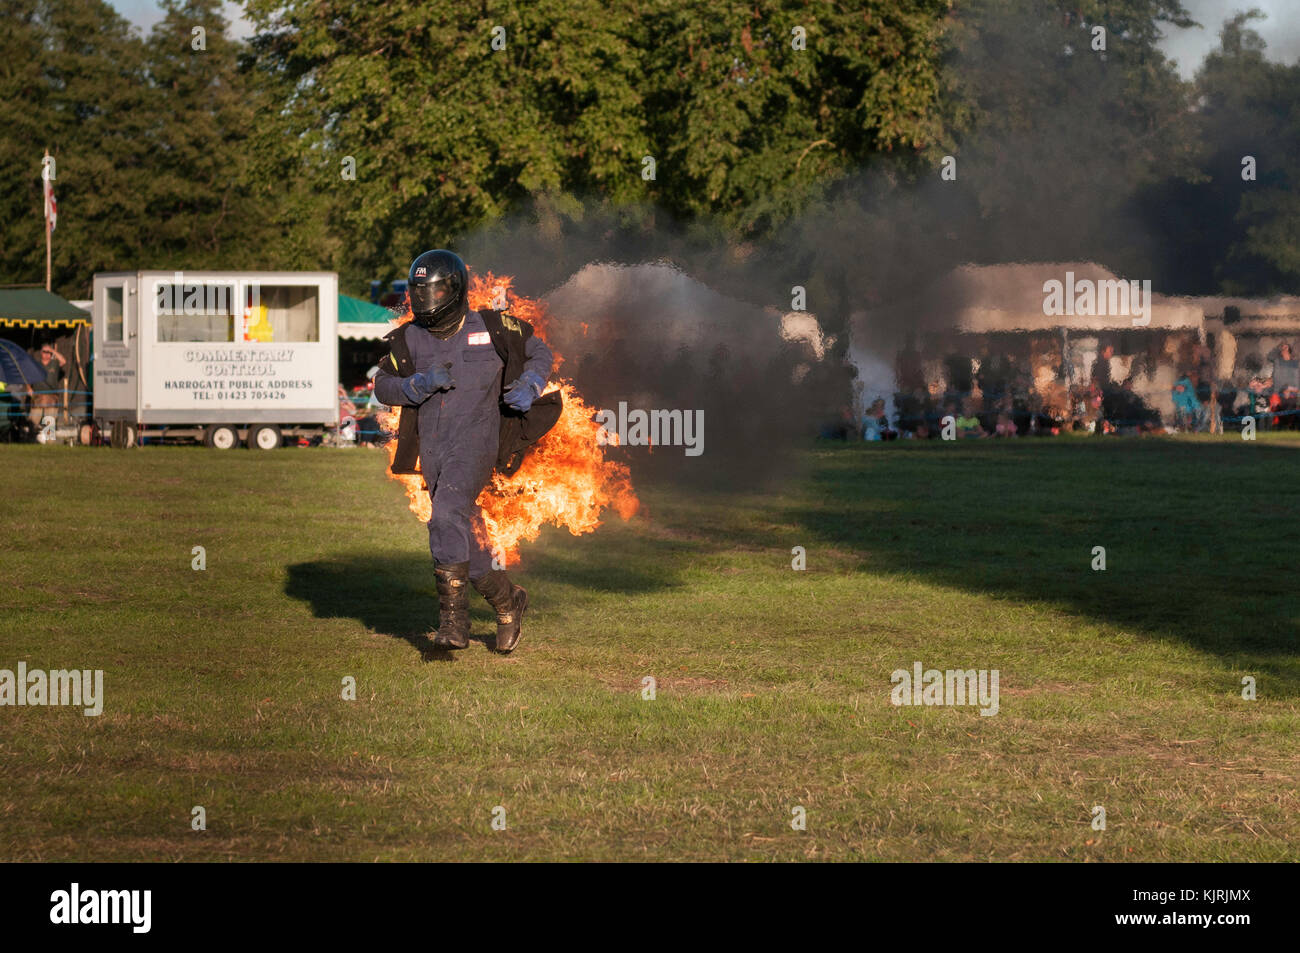 Astle Park, Cheshire, UK - August 12 2017: A stuntman on fire at Astle Park Traction Engine Rally - Stock Image